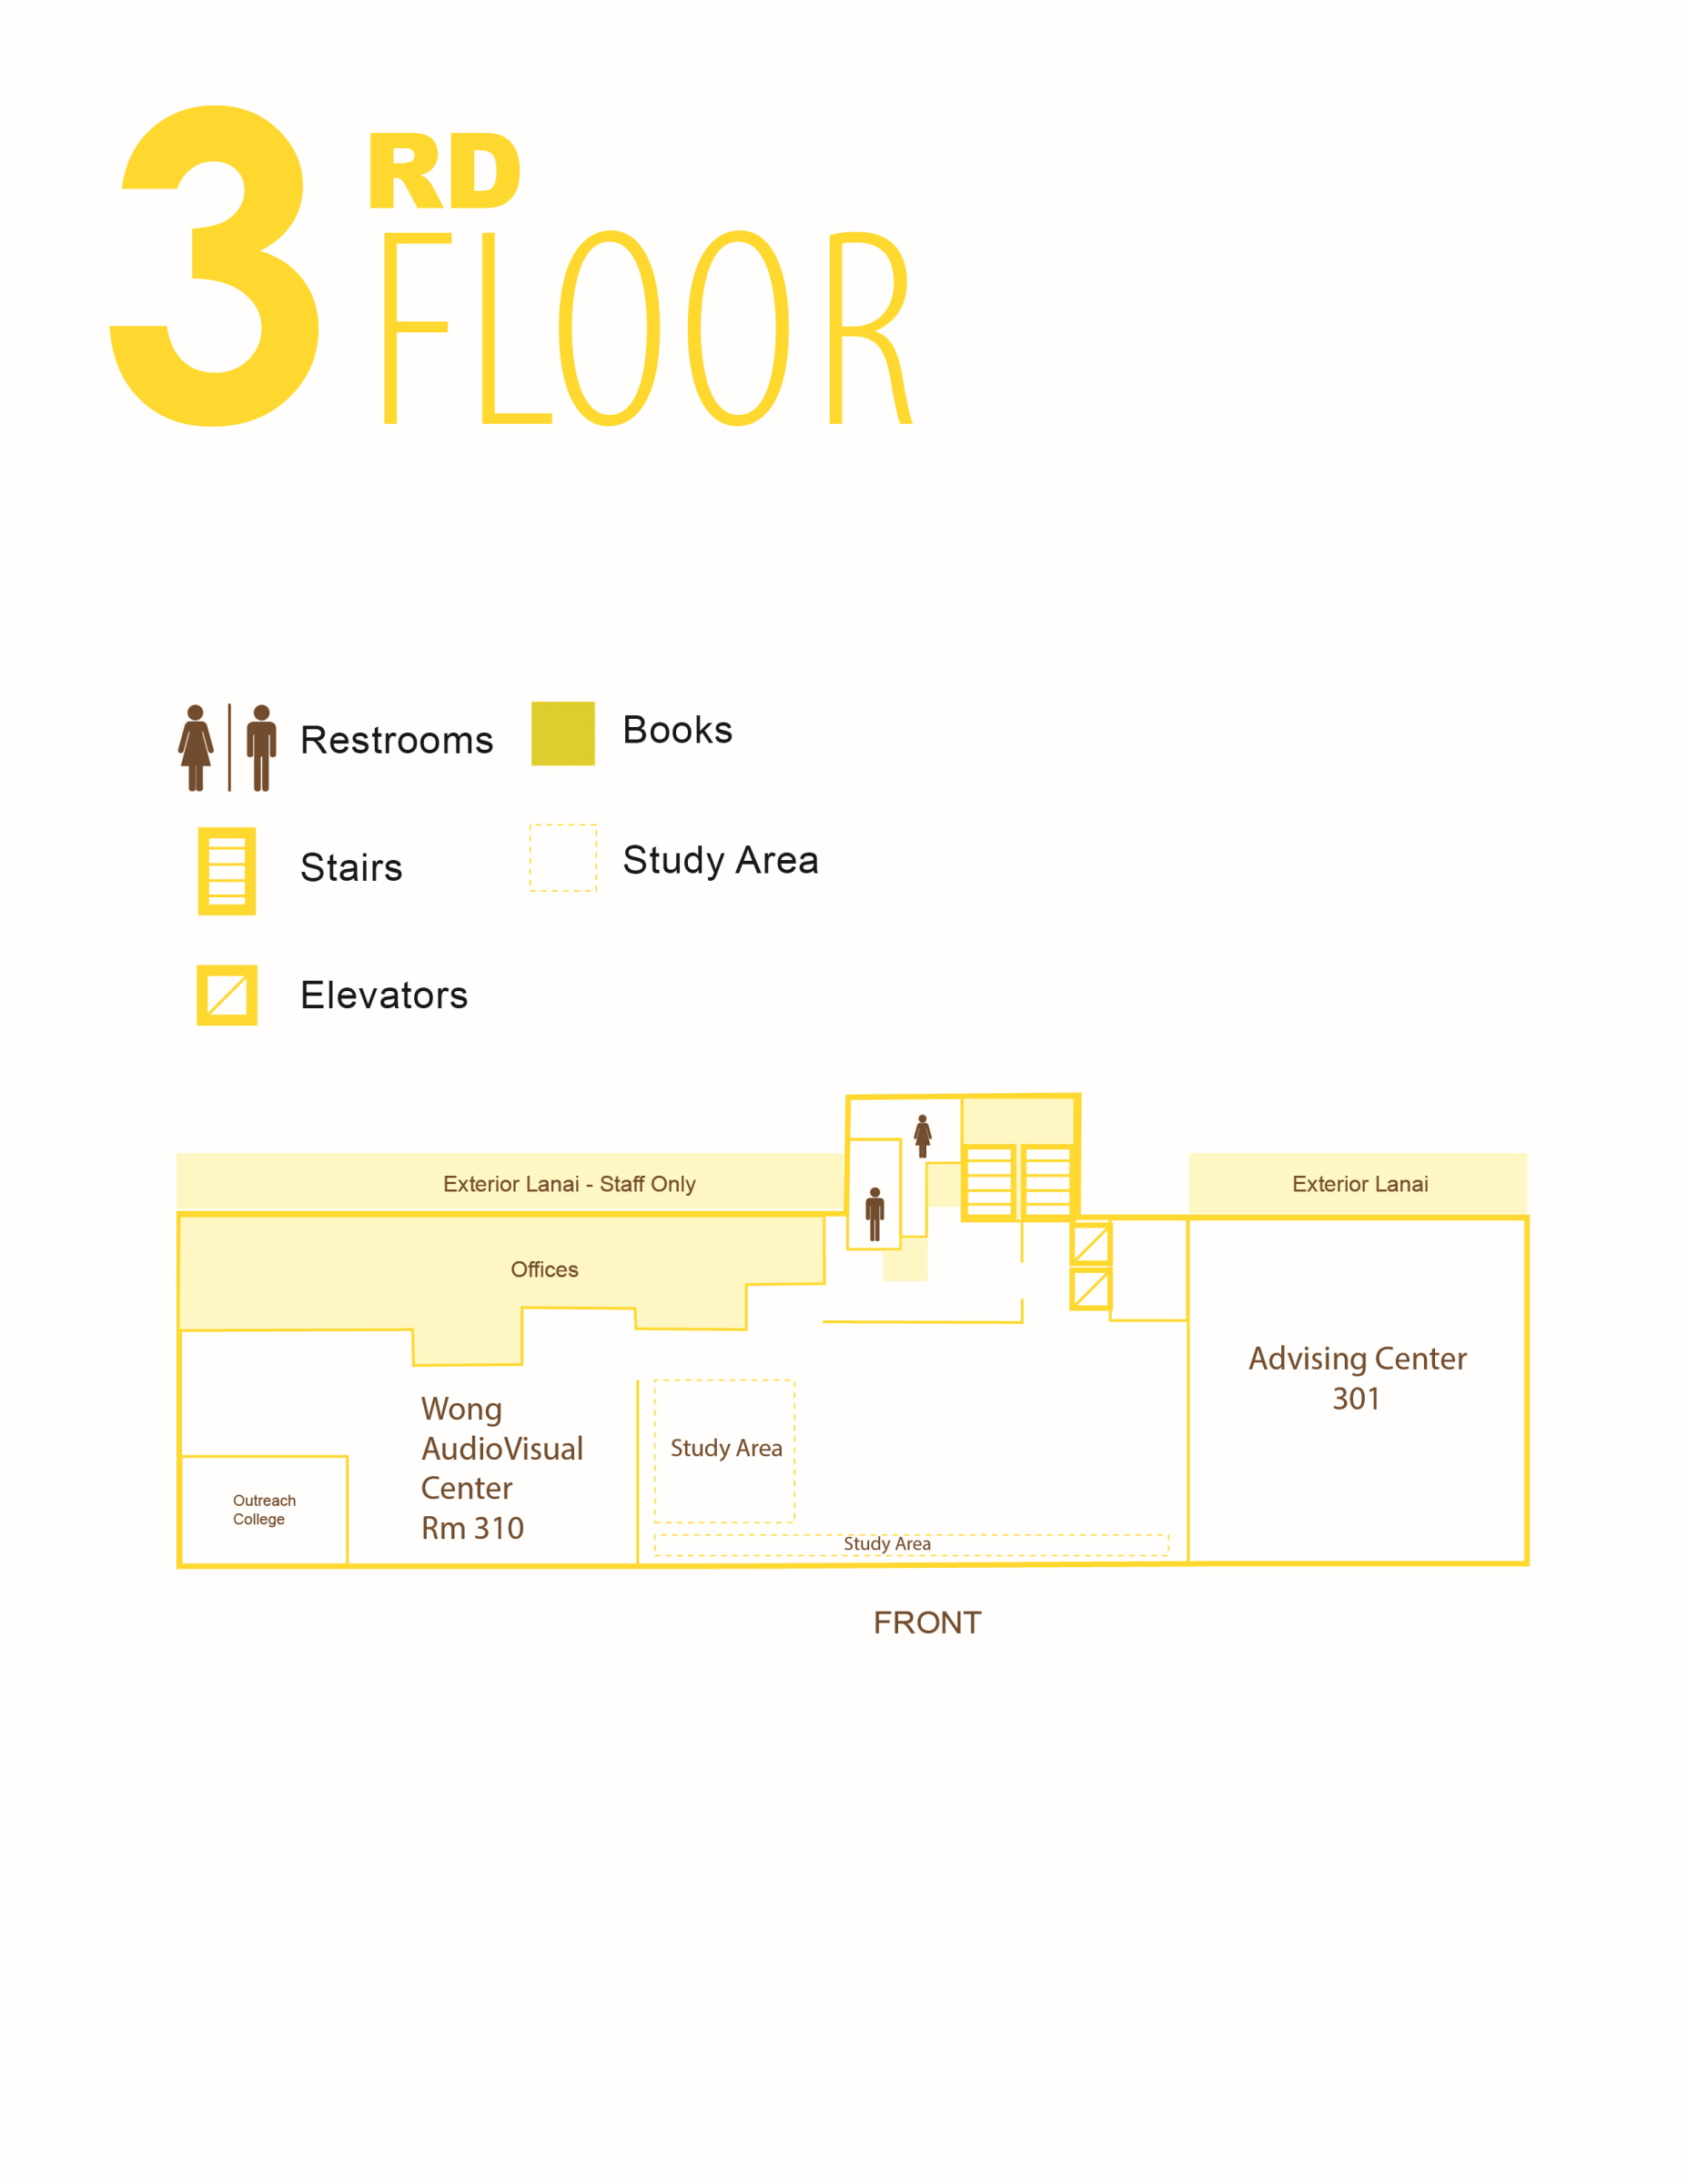 Sinclair third floor map